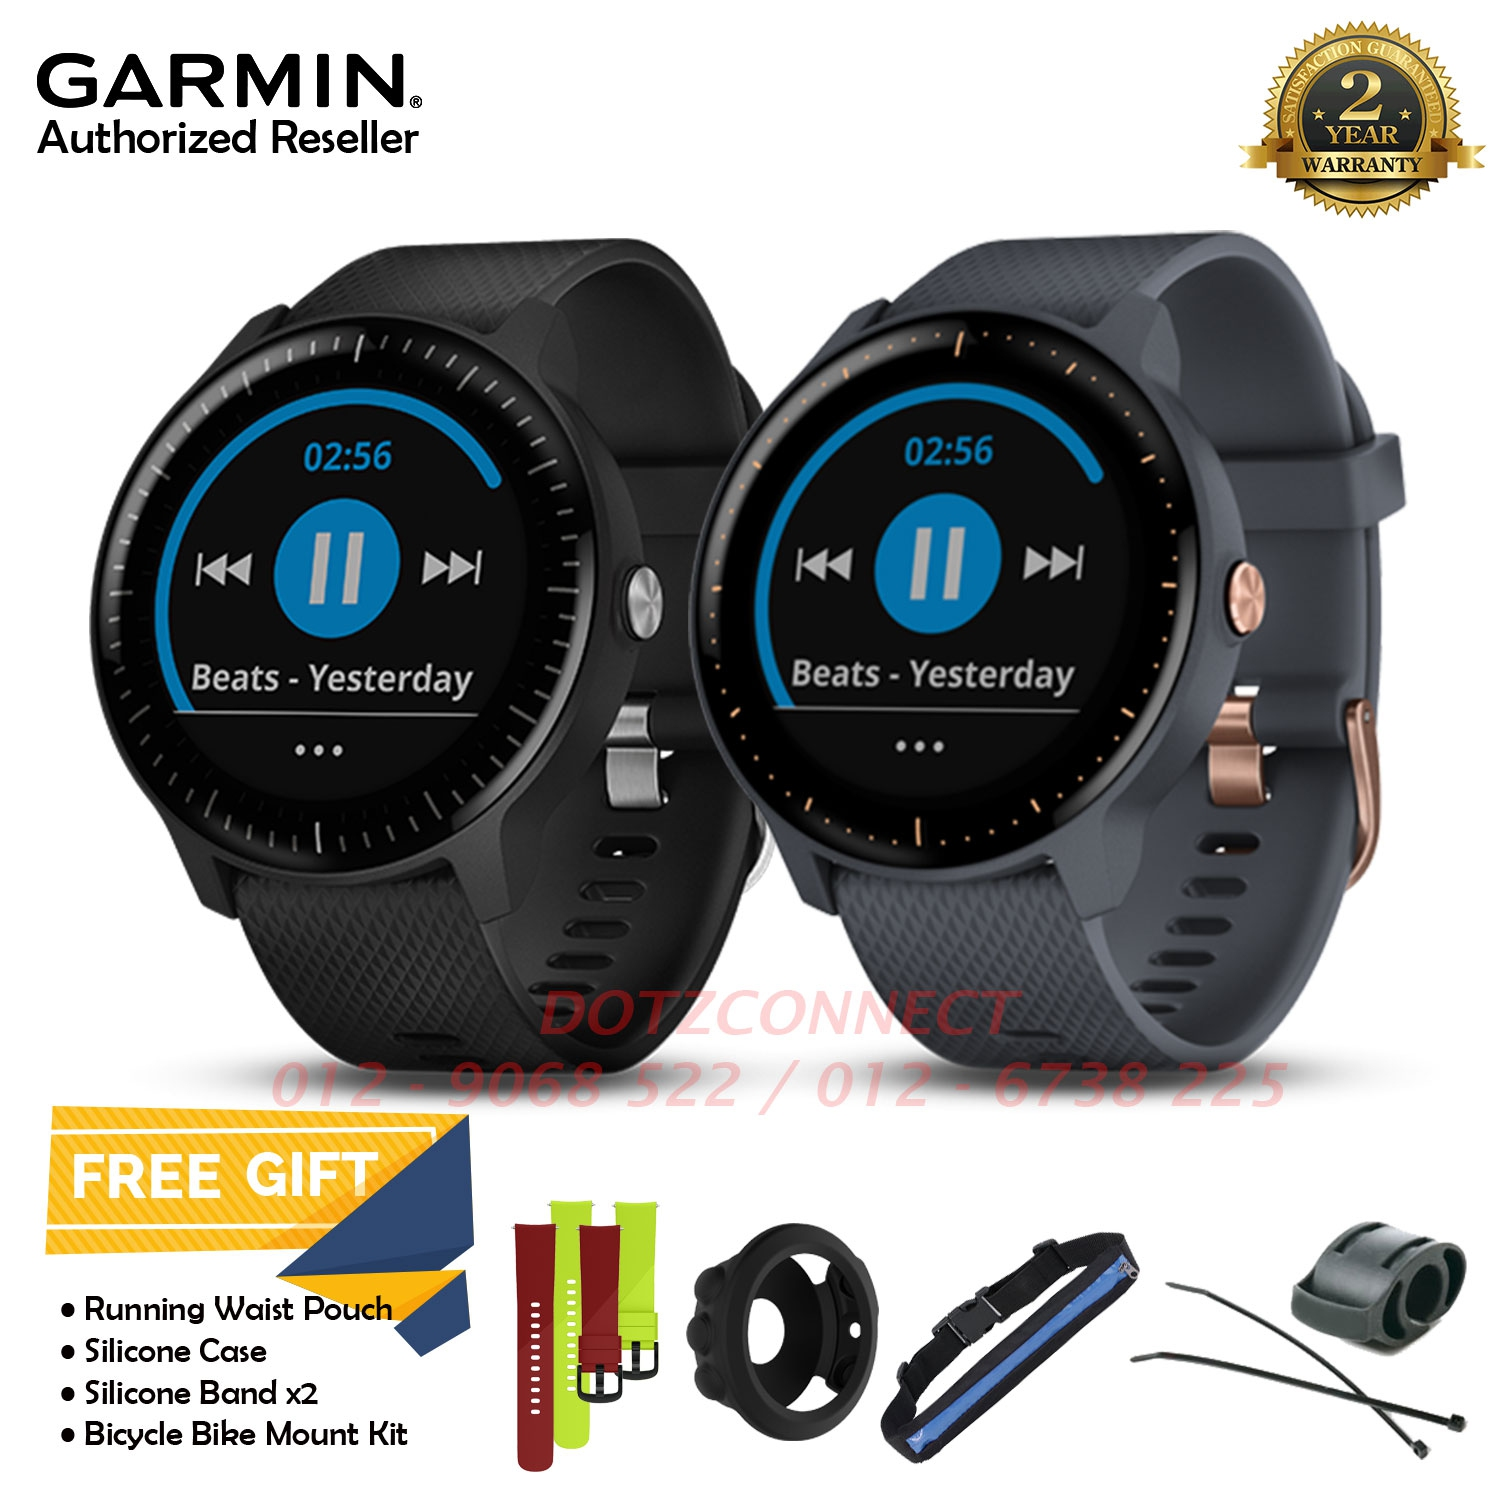 Garmin Vivoactive 3 Music GPS Smartwatch with Music Storage and Playback